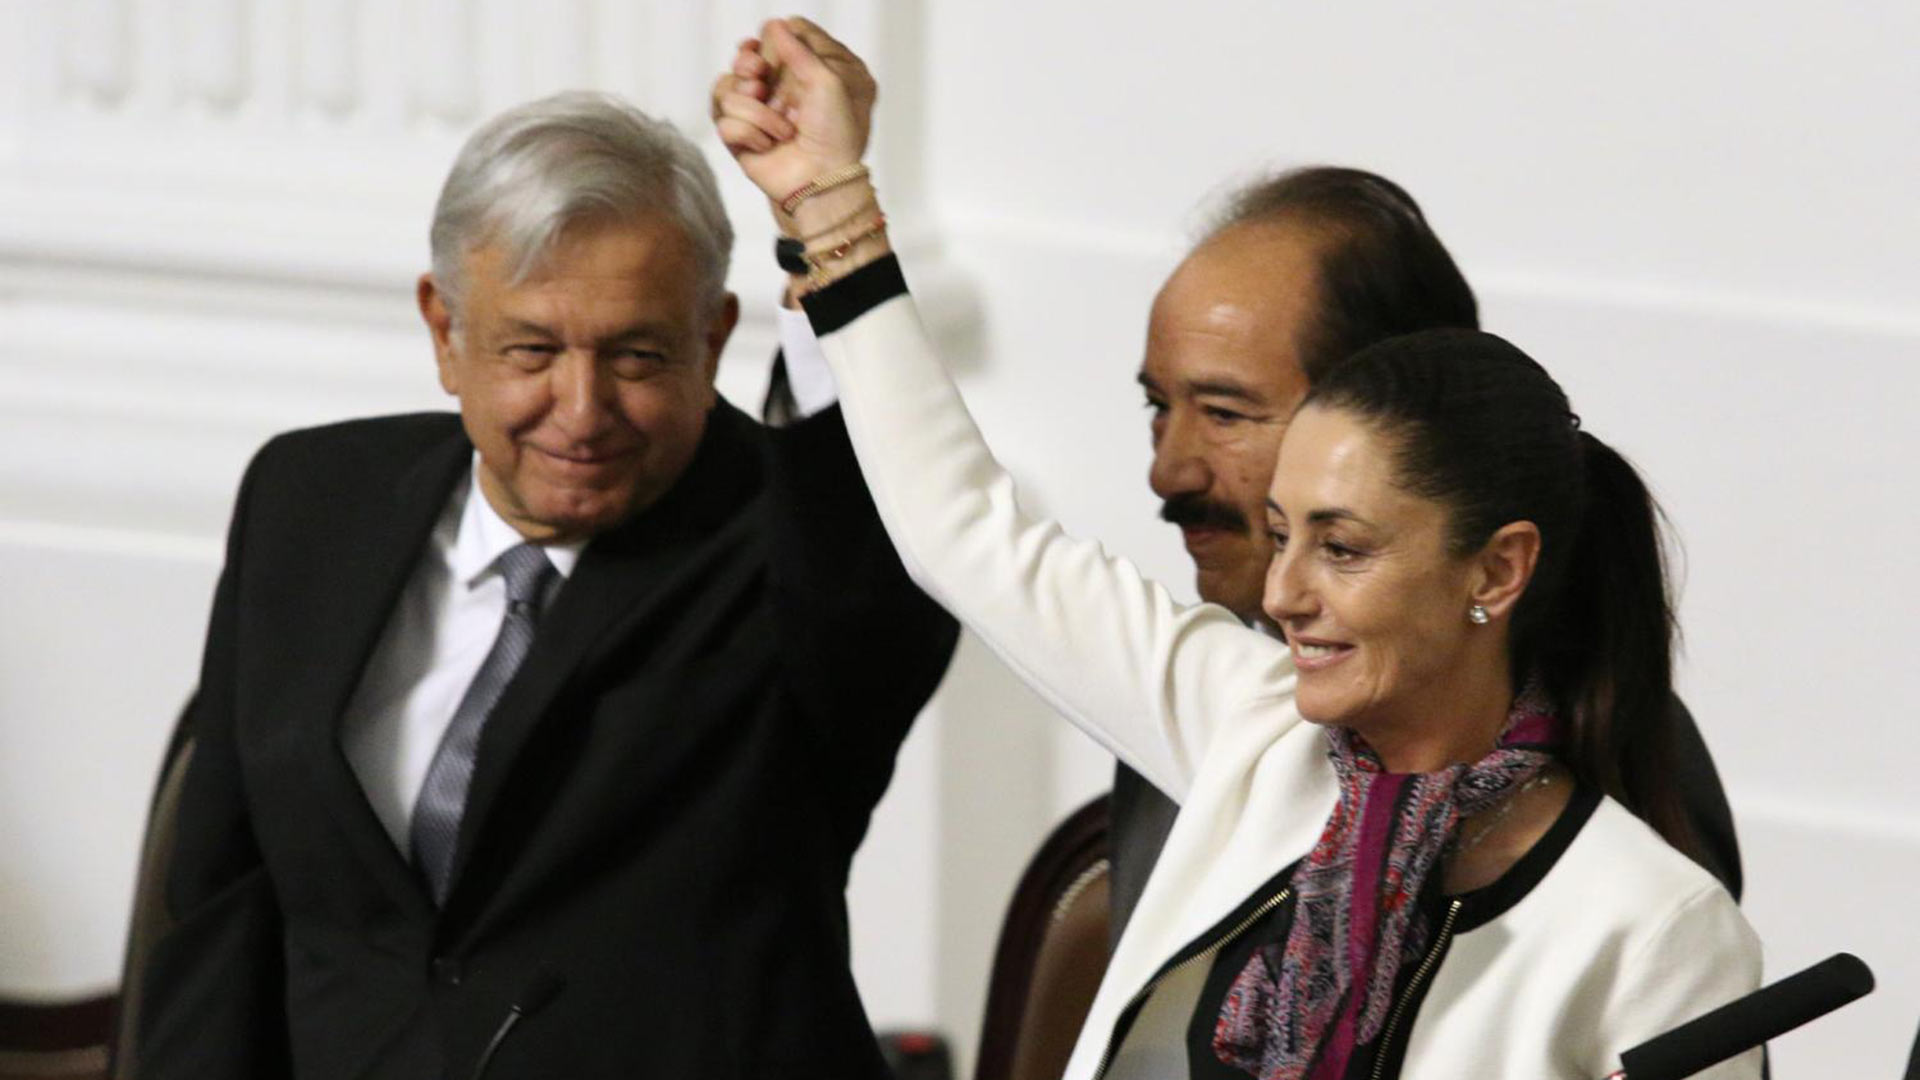 Claudia Sheinbaum Pardo, Mexico City's first elected female mayor, holds up a hand with President Andrés Manuel López Obrador as Mexico City Congress President José de Jesús Martín del Campo looks on.